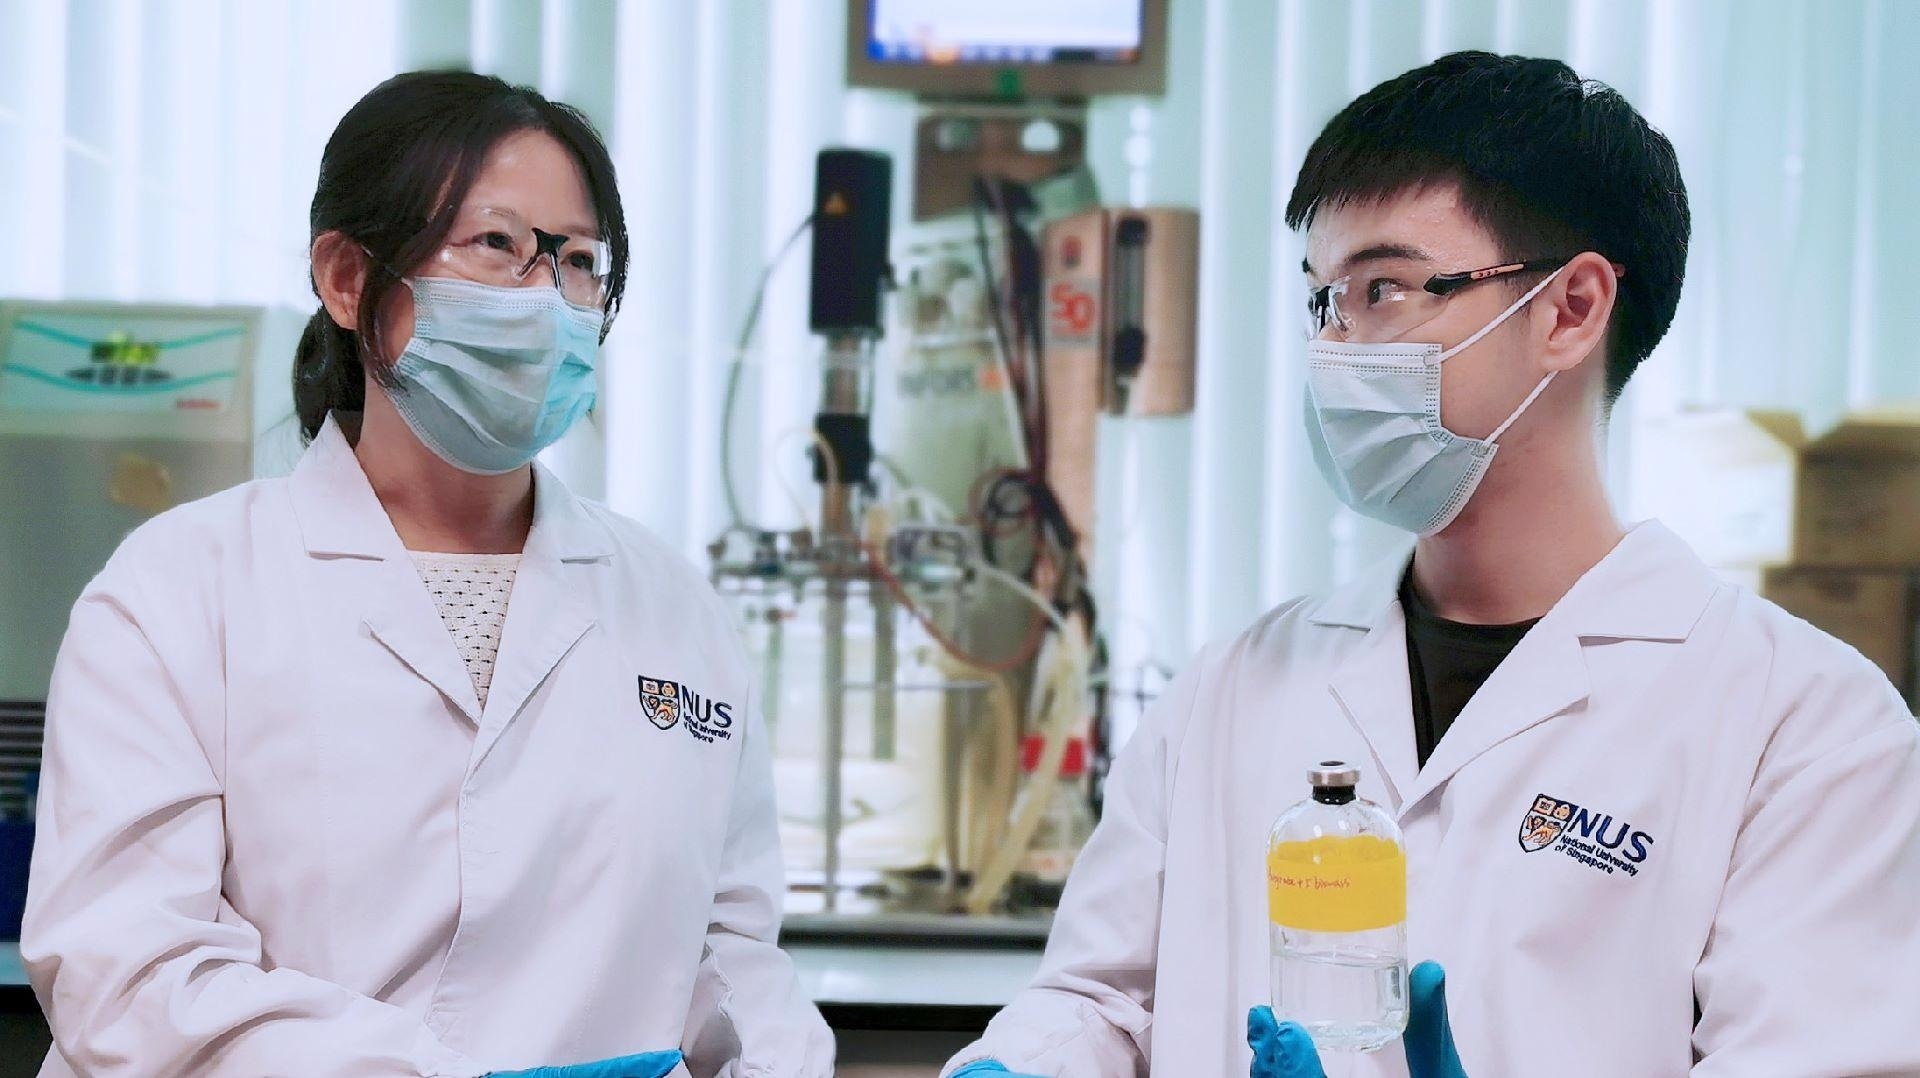 The team led by Associate Professor He Jianzhong (left) and Research Fellow Dr Wang Qingkun (right) discovered Thauera sp. strain SND5 after they isolated and tested various strains of bacteria from wastewater samples. Dr Wang holding a wastewater sample containing the unique SND5 bacterium.